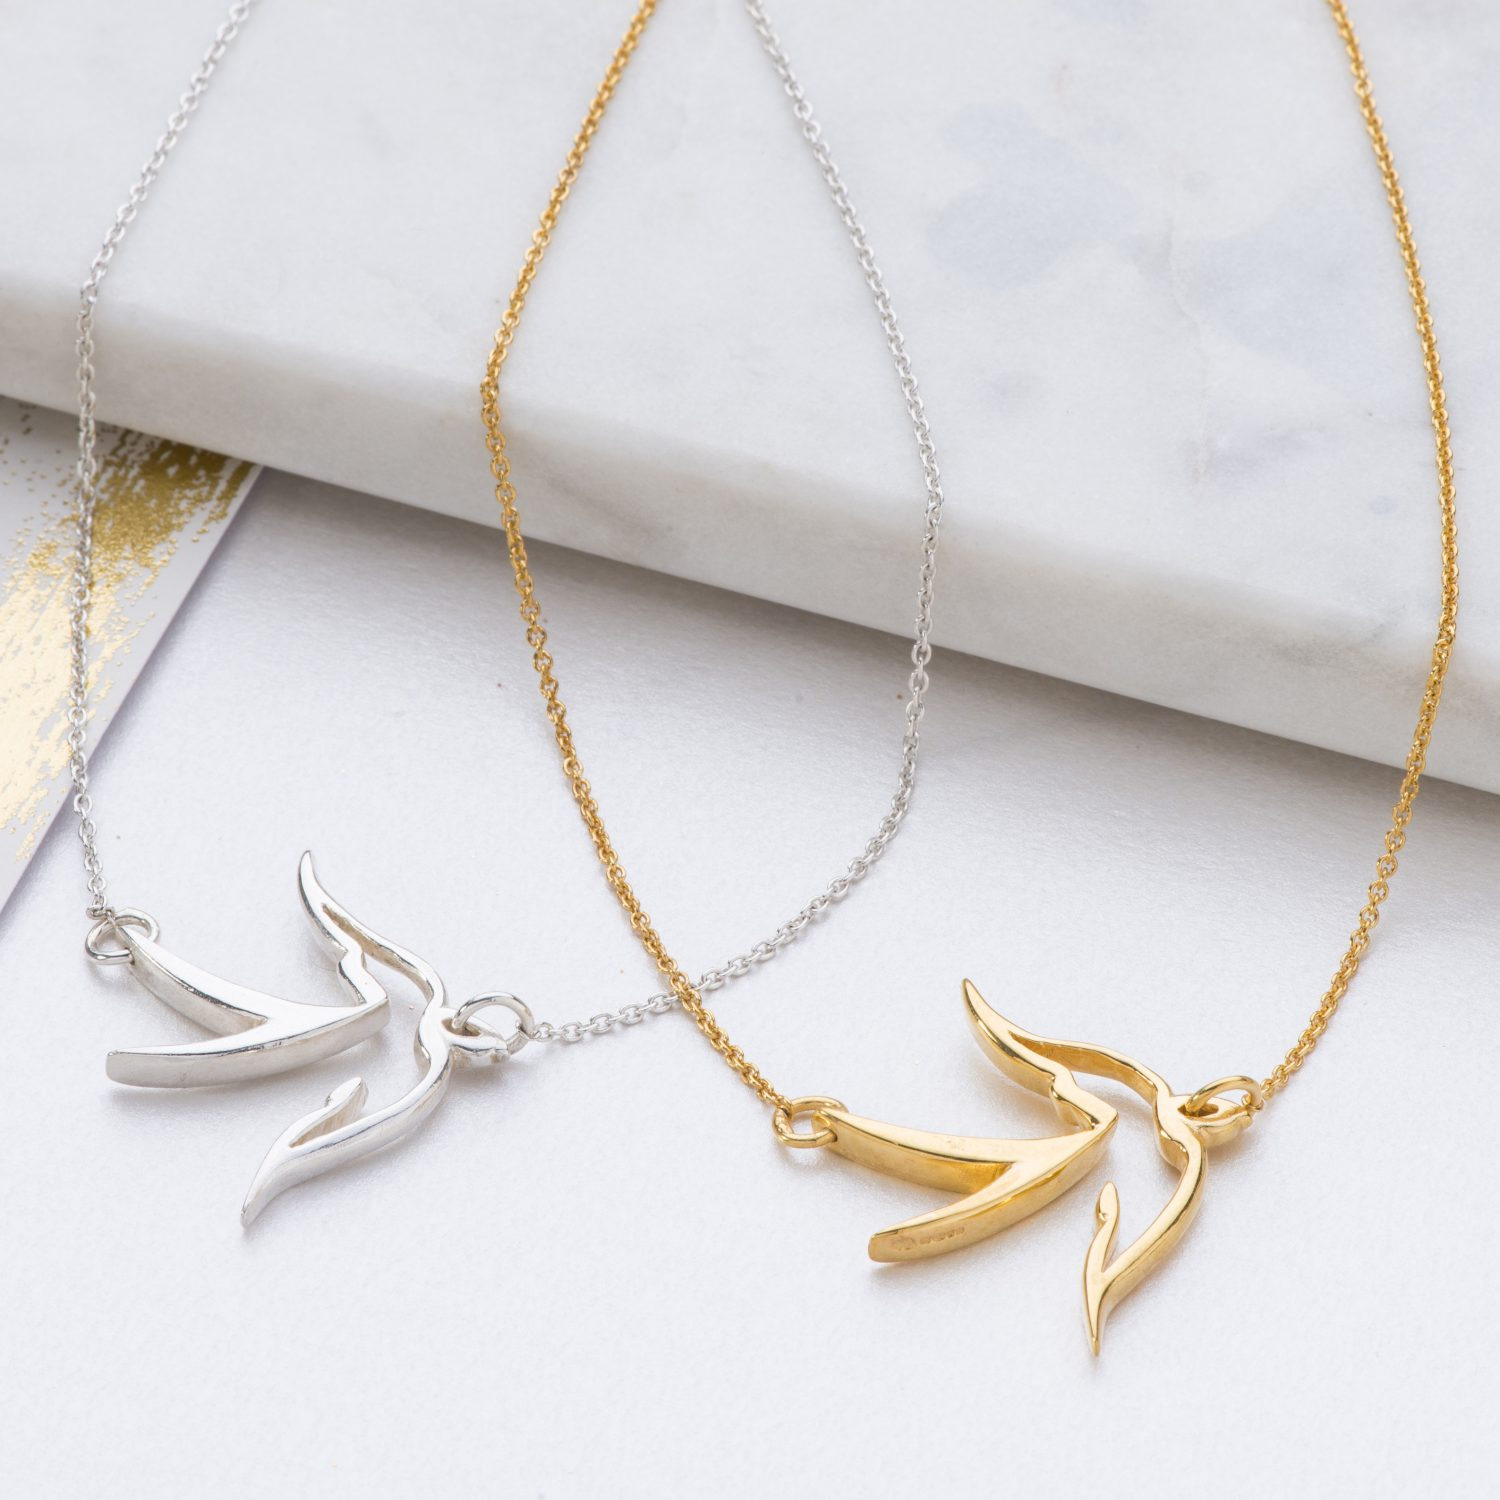 Large bird pendant handmade in silver or gold plate by kimberley selwood silver and gold large bird pendant mozeypictures Choice Image